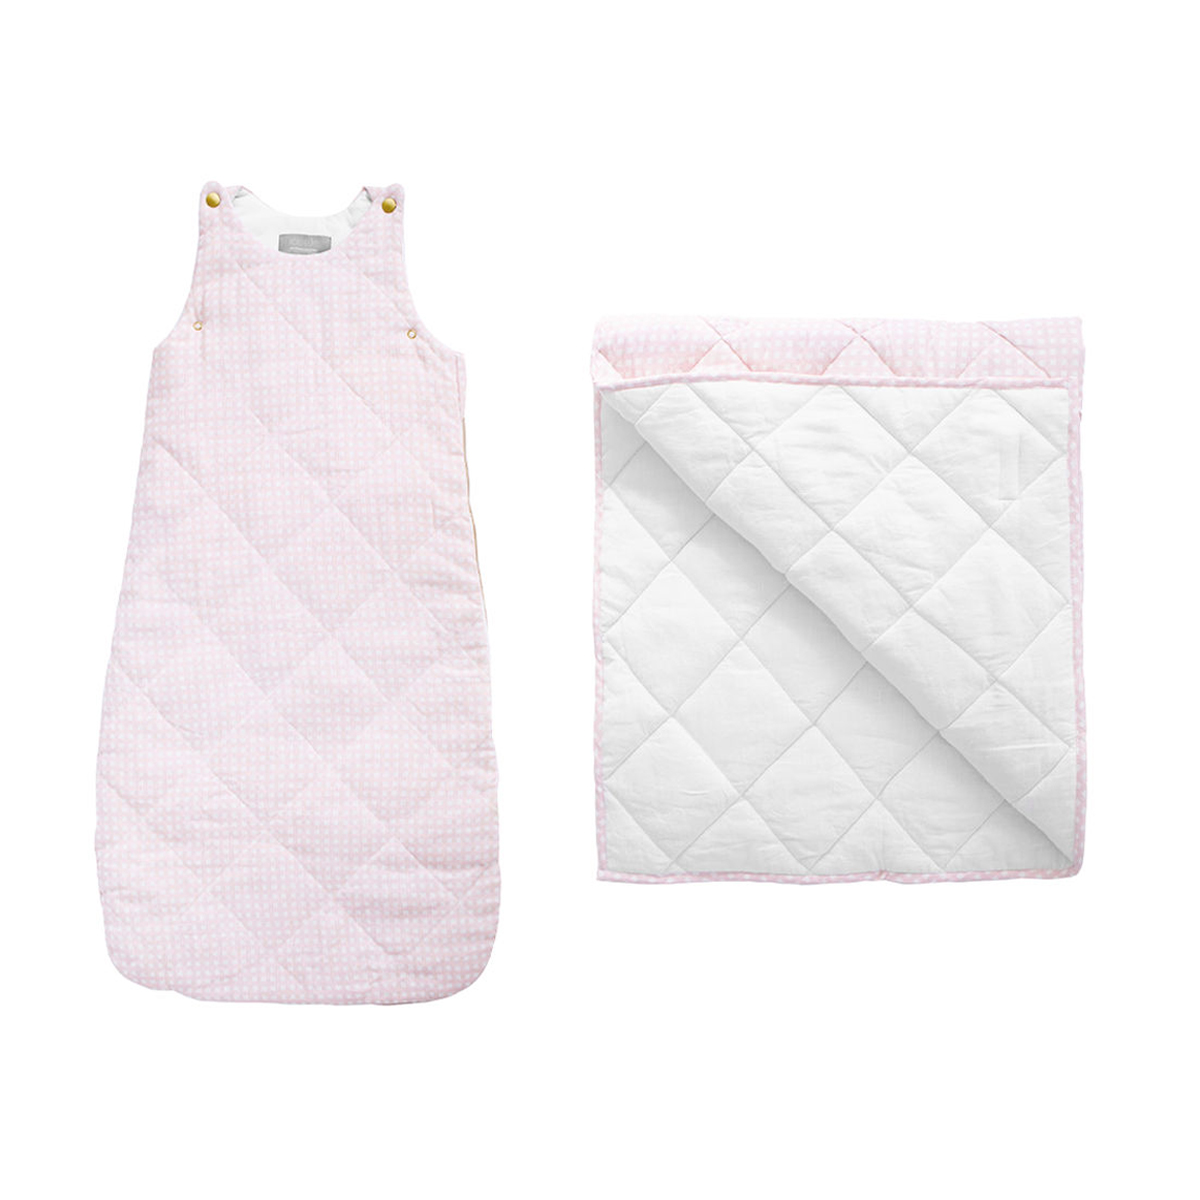 Louelle Playmat and Sleeping Bag Set – Dusty Pink Gingham